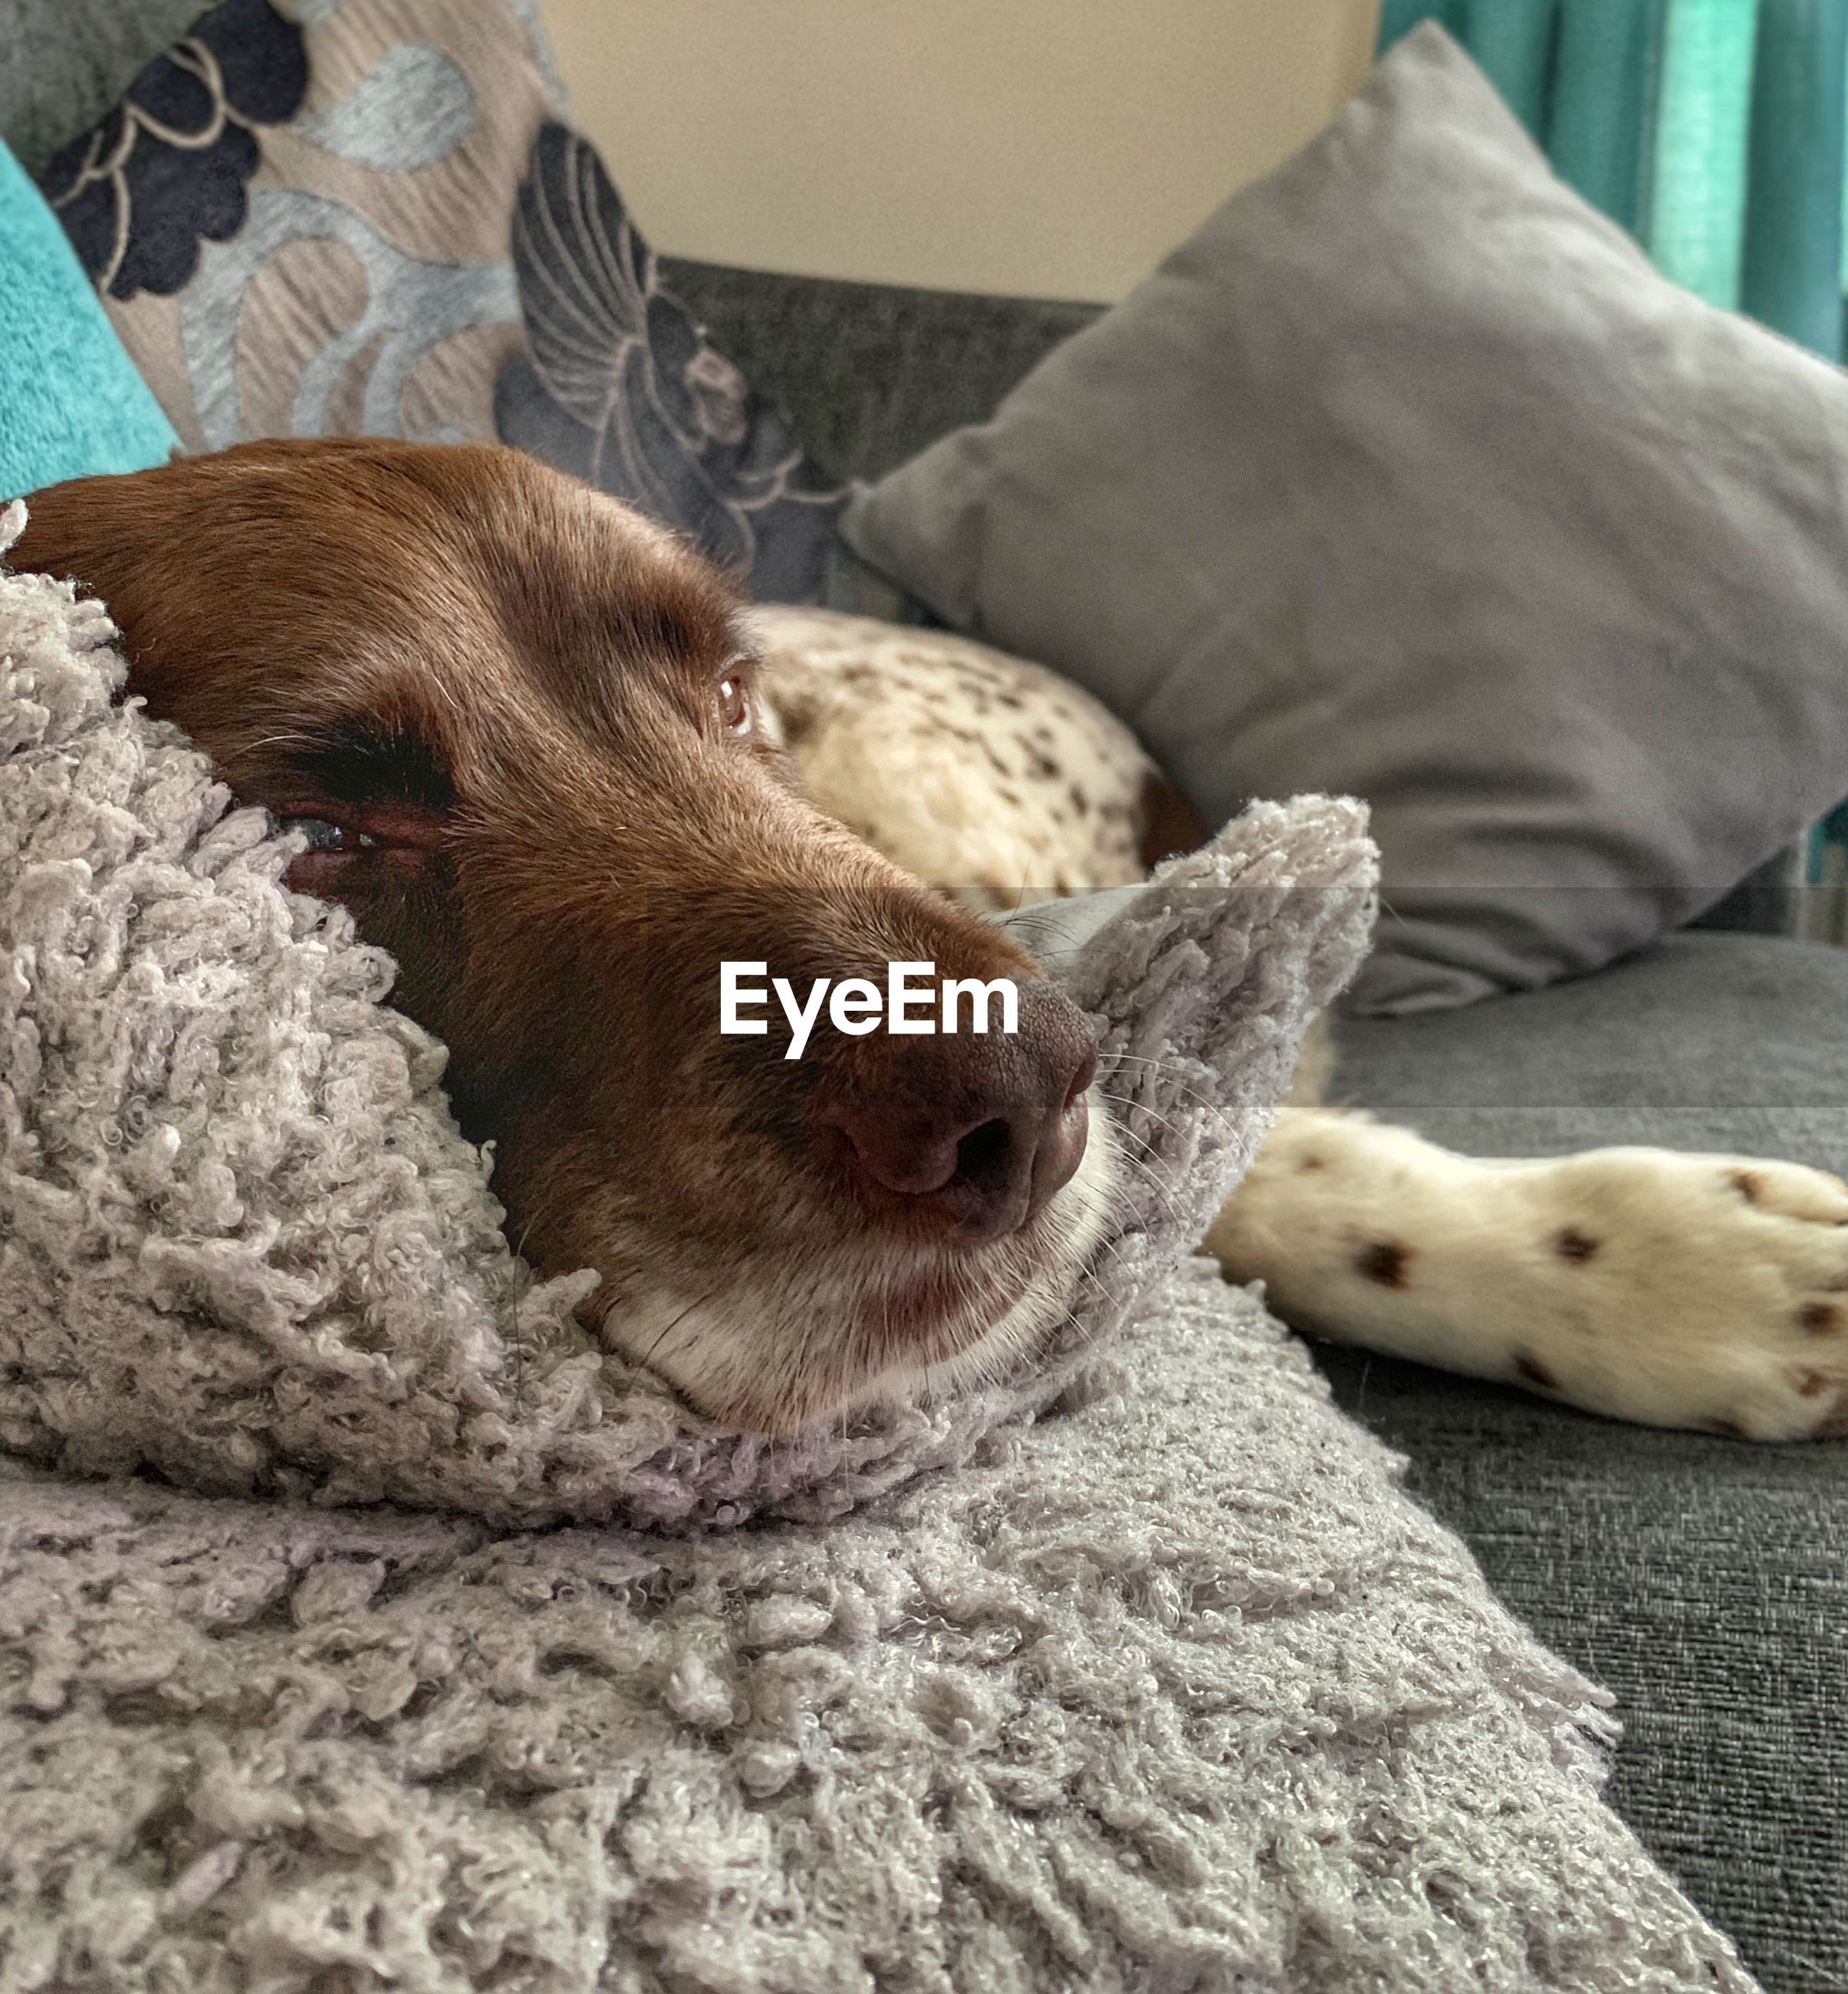 mammal, domestic, pets, domestic animals, animal themes, animal, furniture, one animal, relaxation, indoors, vertebrate, bed, dog, canine, home interior, lying down, no people, resting, sleeping, close-up, animal head